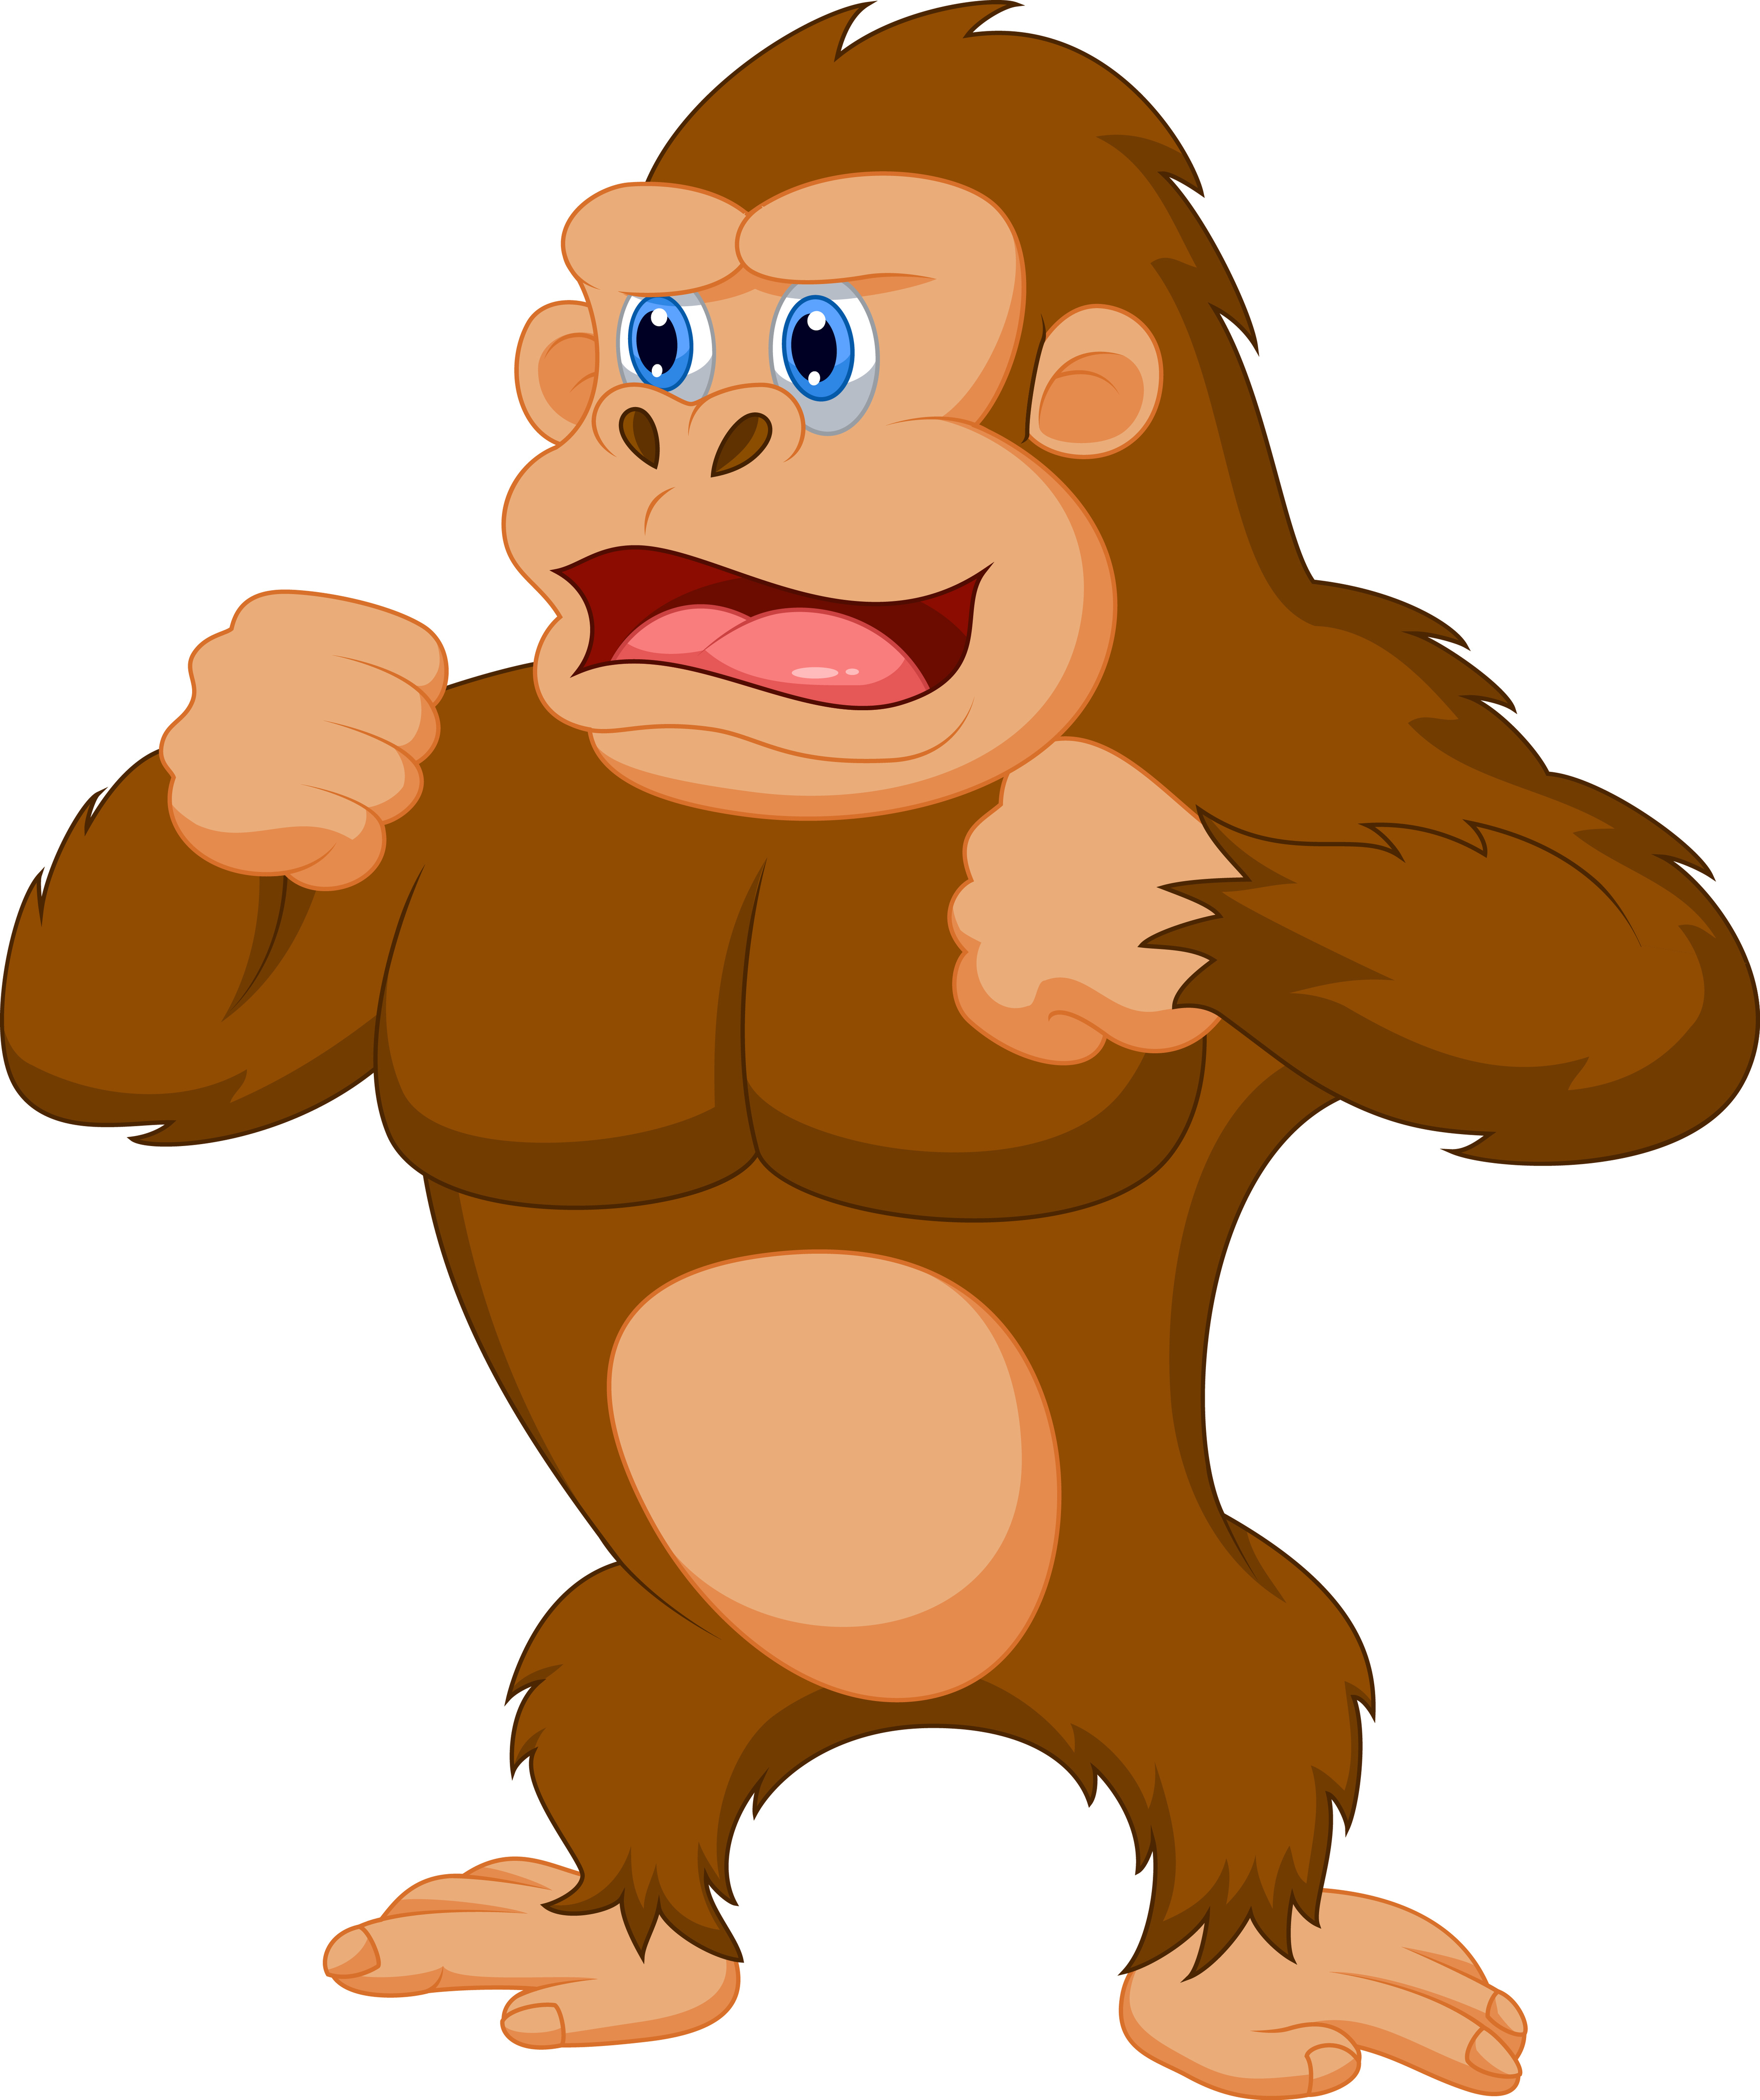 jpg transparent library Ape clipart. For free images